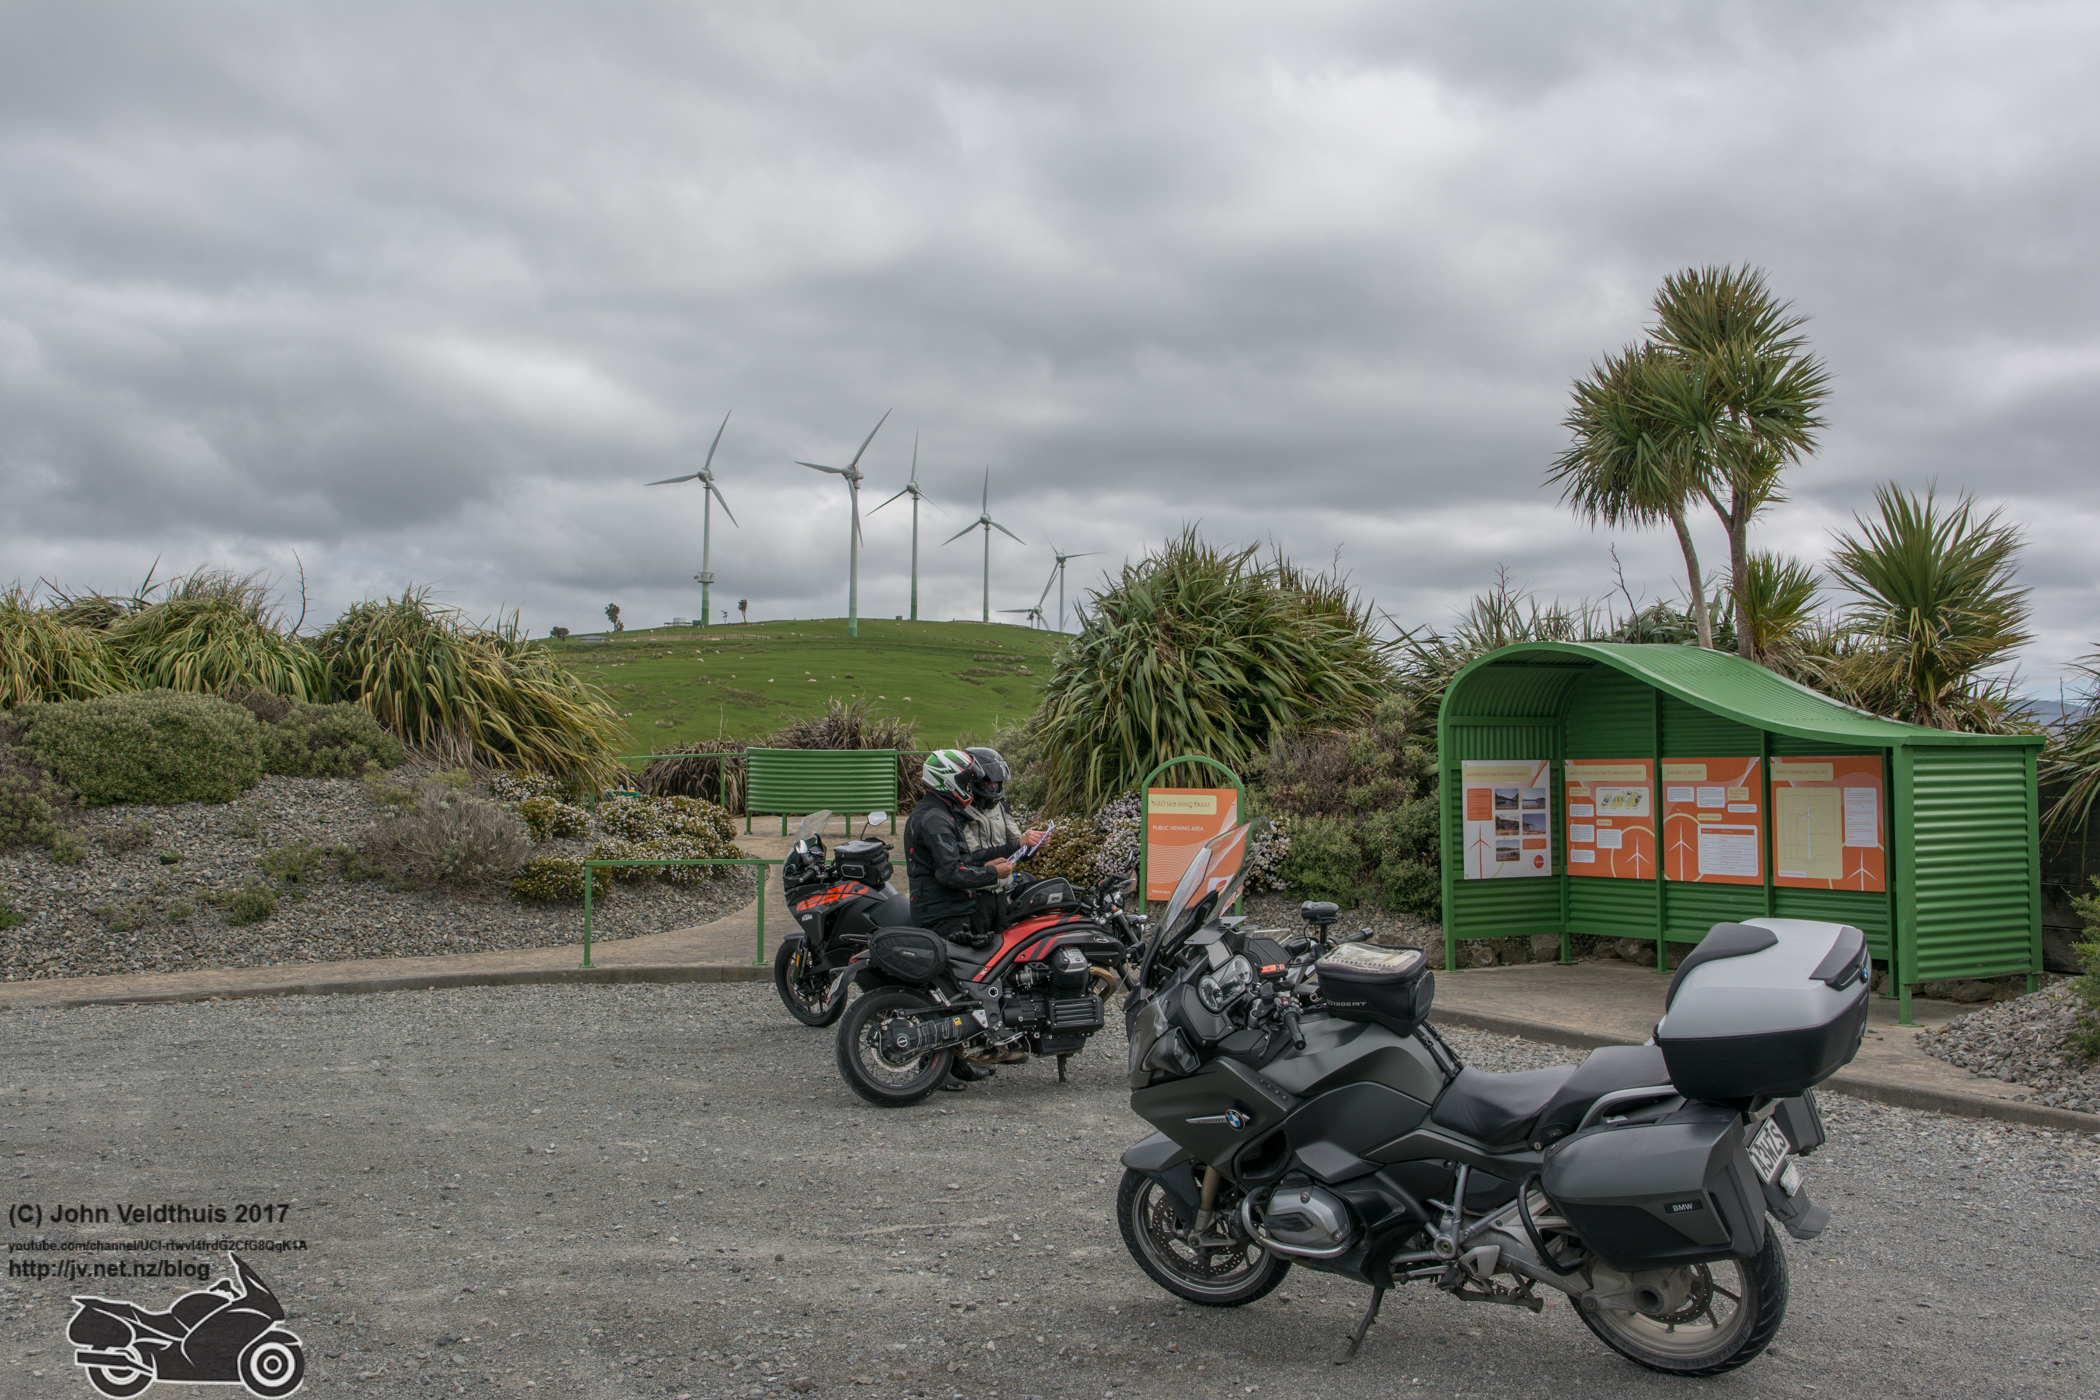 North Island 800 - Windfarm